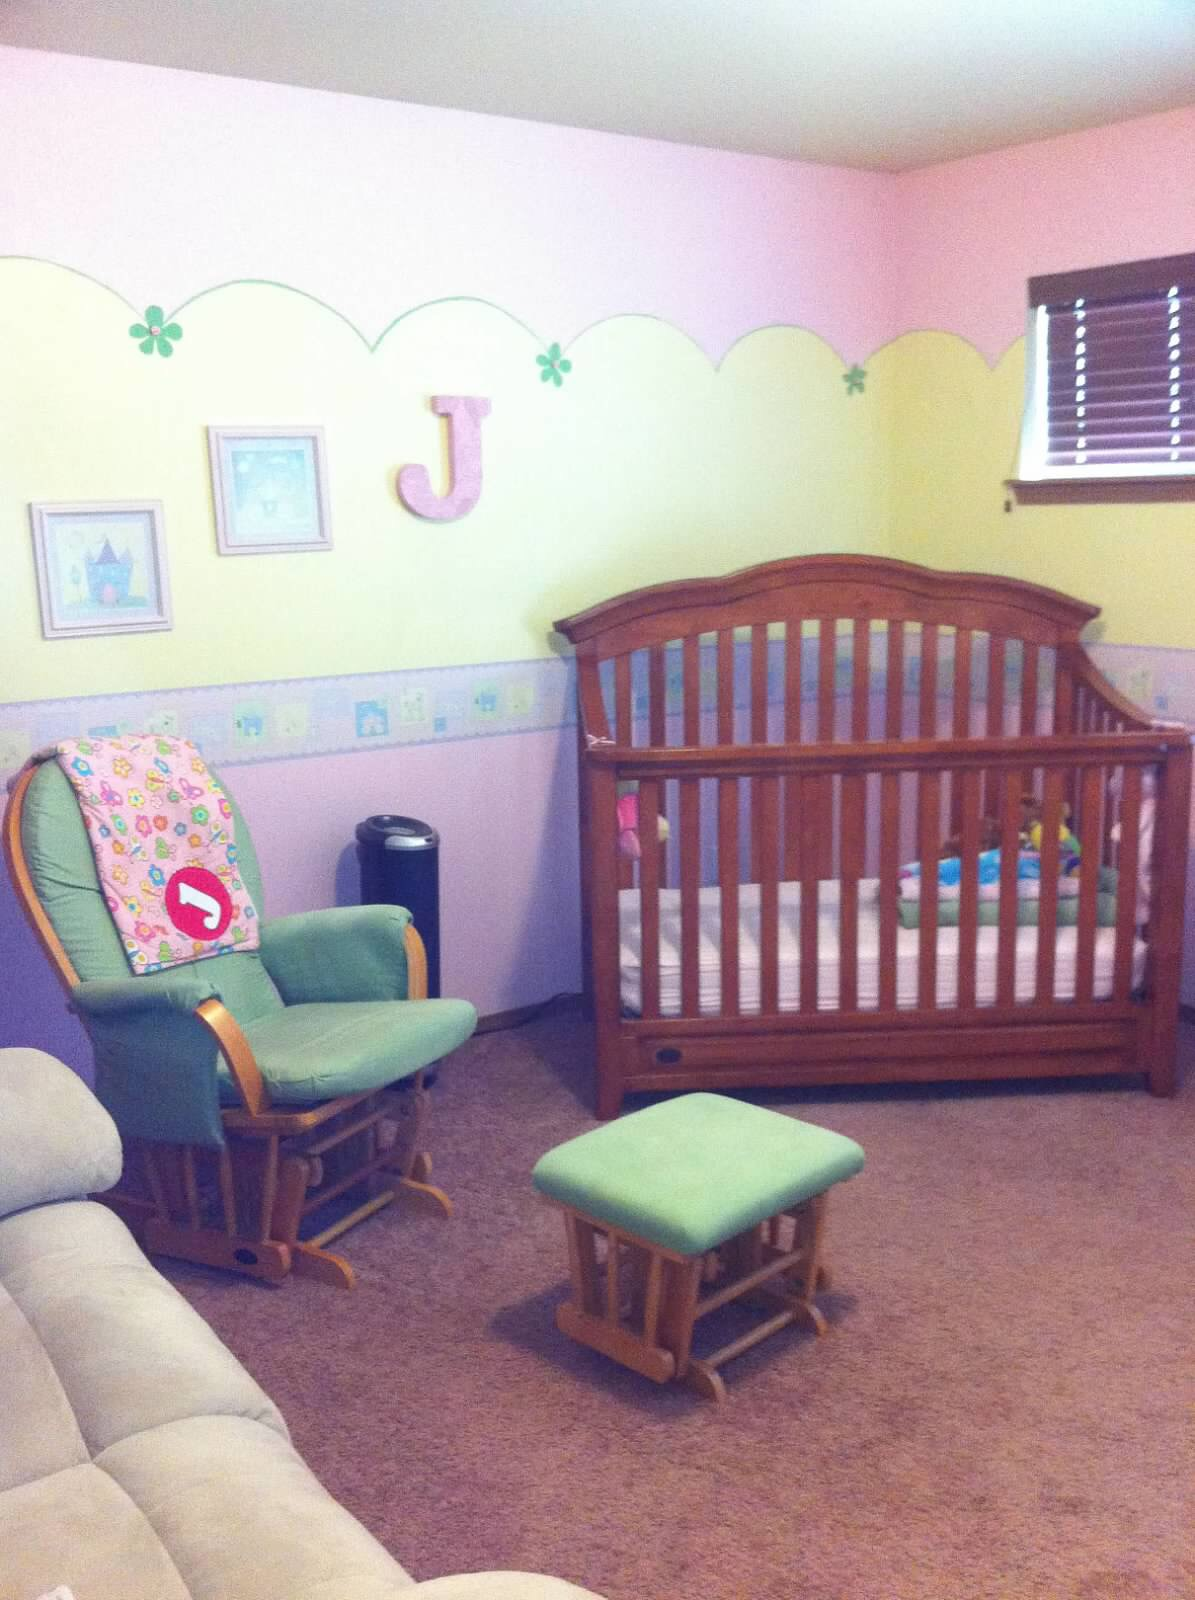 My baby girl... - Here you see for my daughter's nursery I went with pink and yellow with green as an accent. The wallpaper border allows even more accent colors to be chosen if I desired.